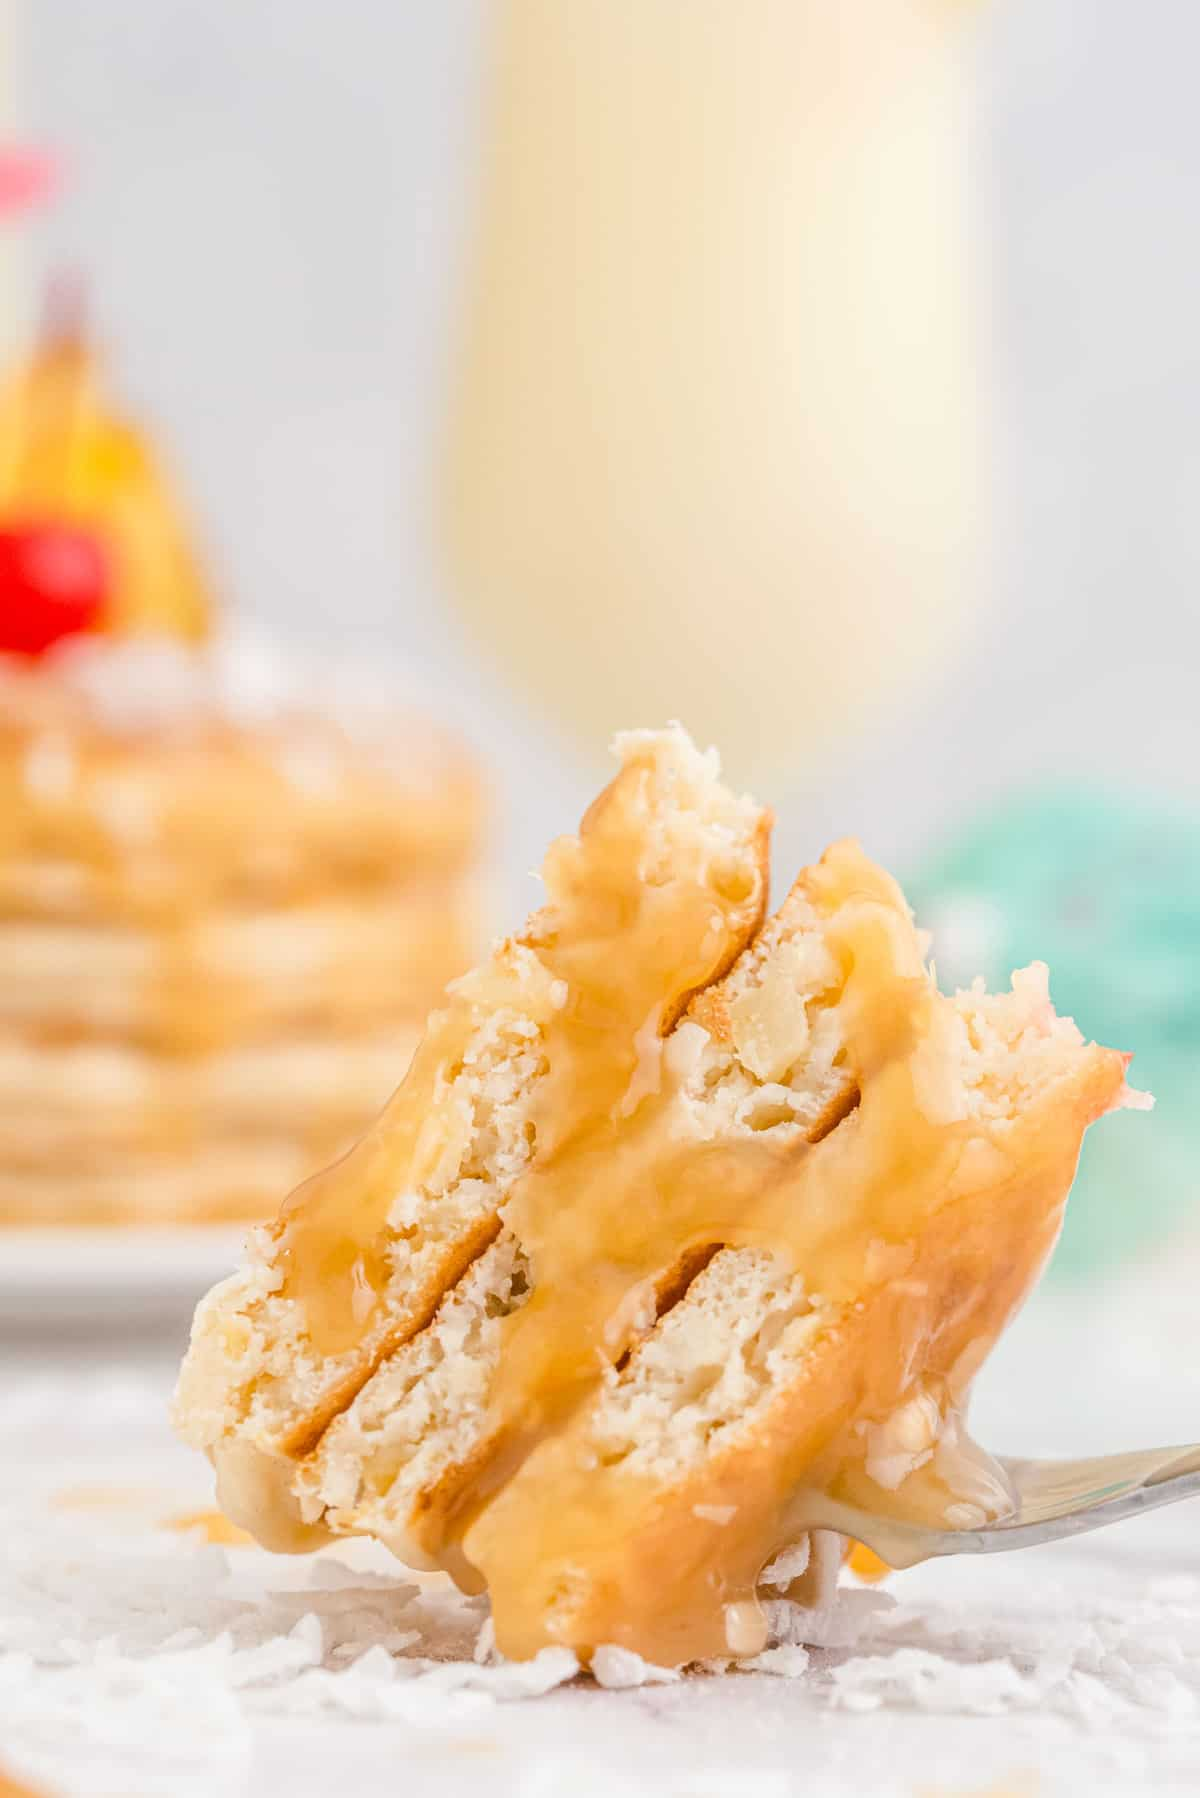 Cut pina colada pancakes on a fork, dripping with rum sauce.